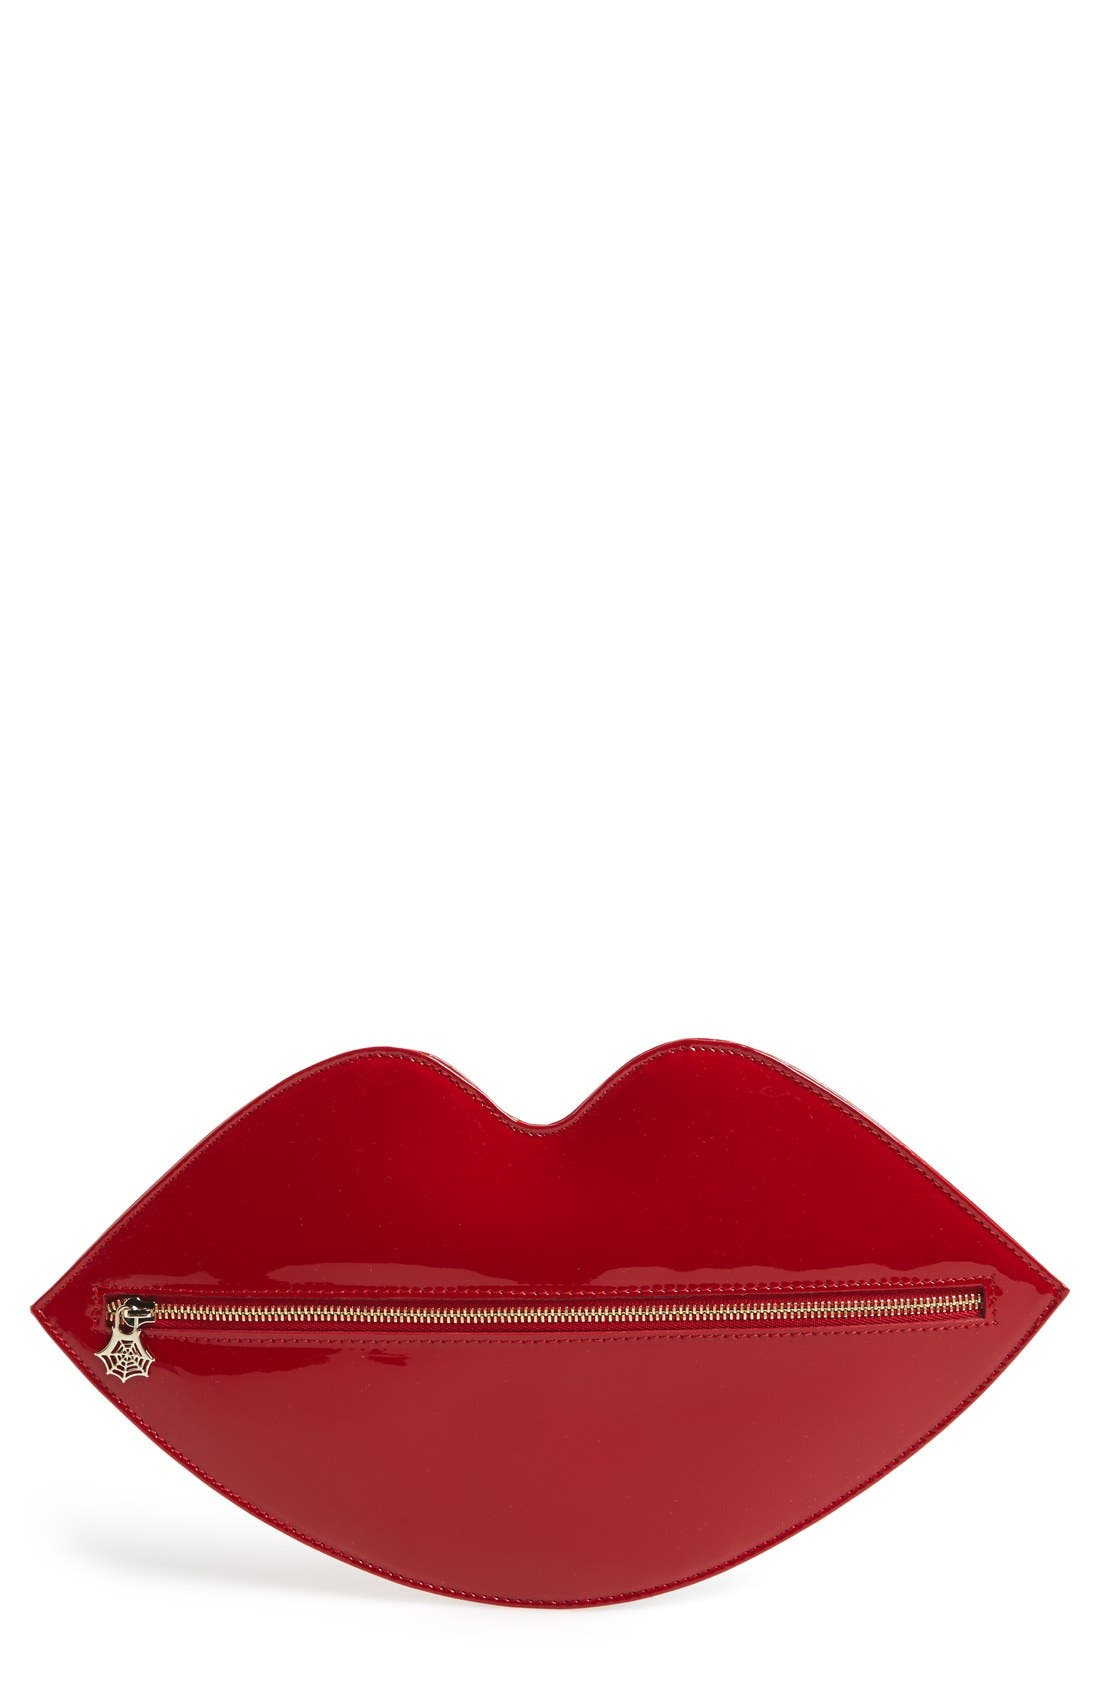 Main Image - Charlotte Olympia Lip Shaped Clutch